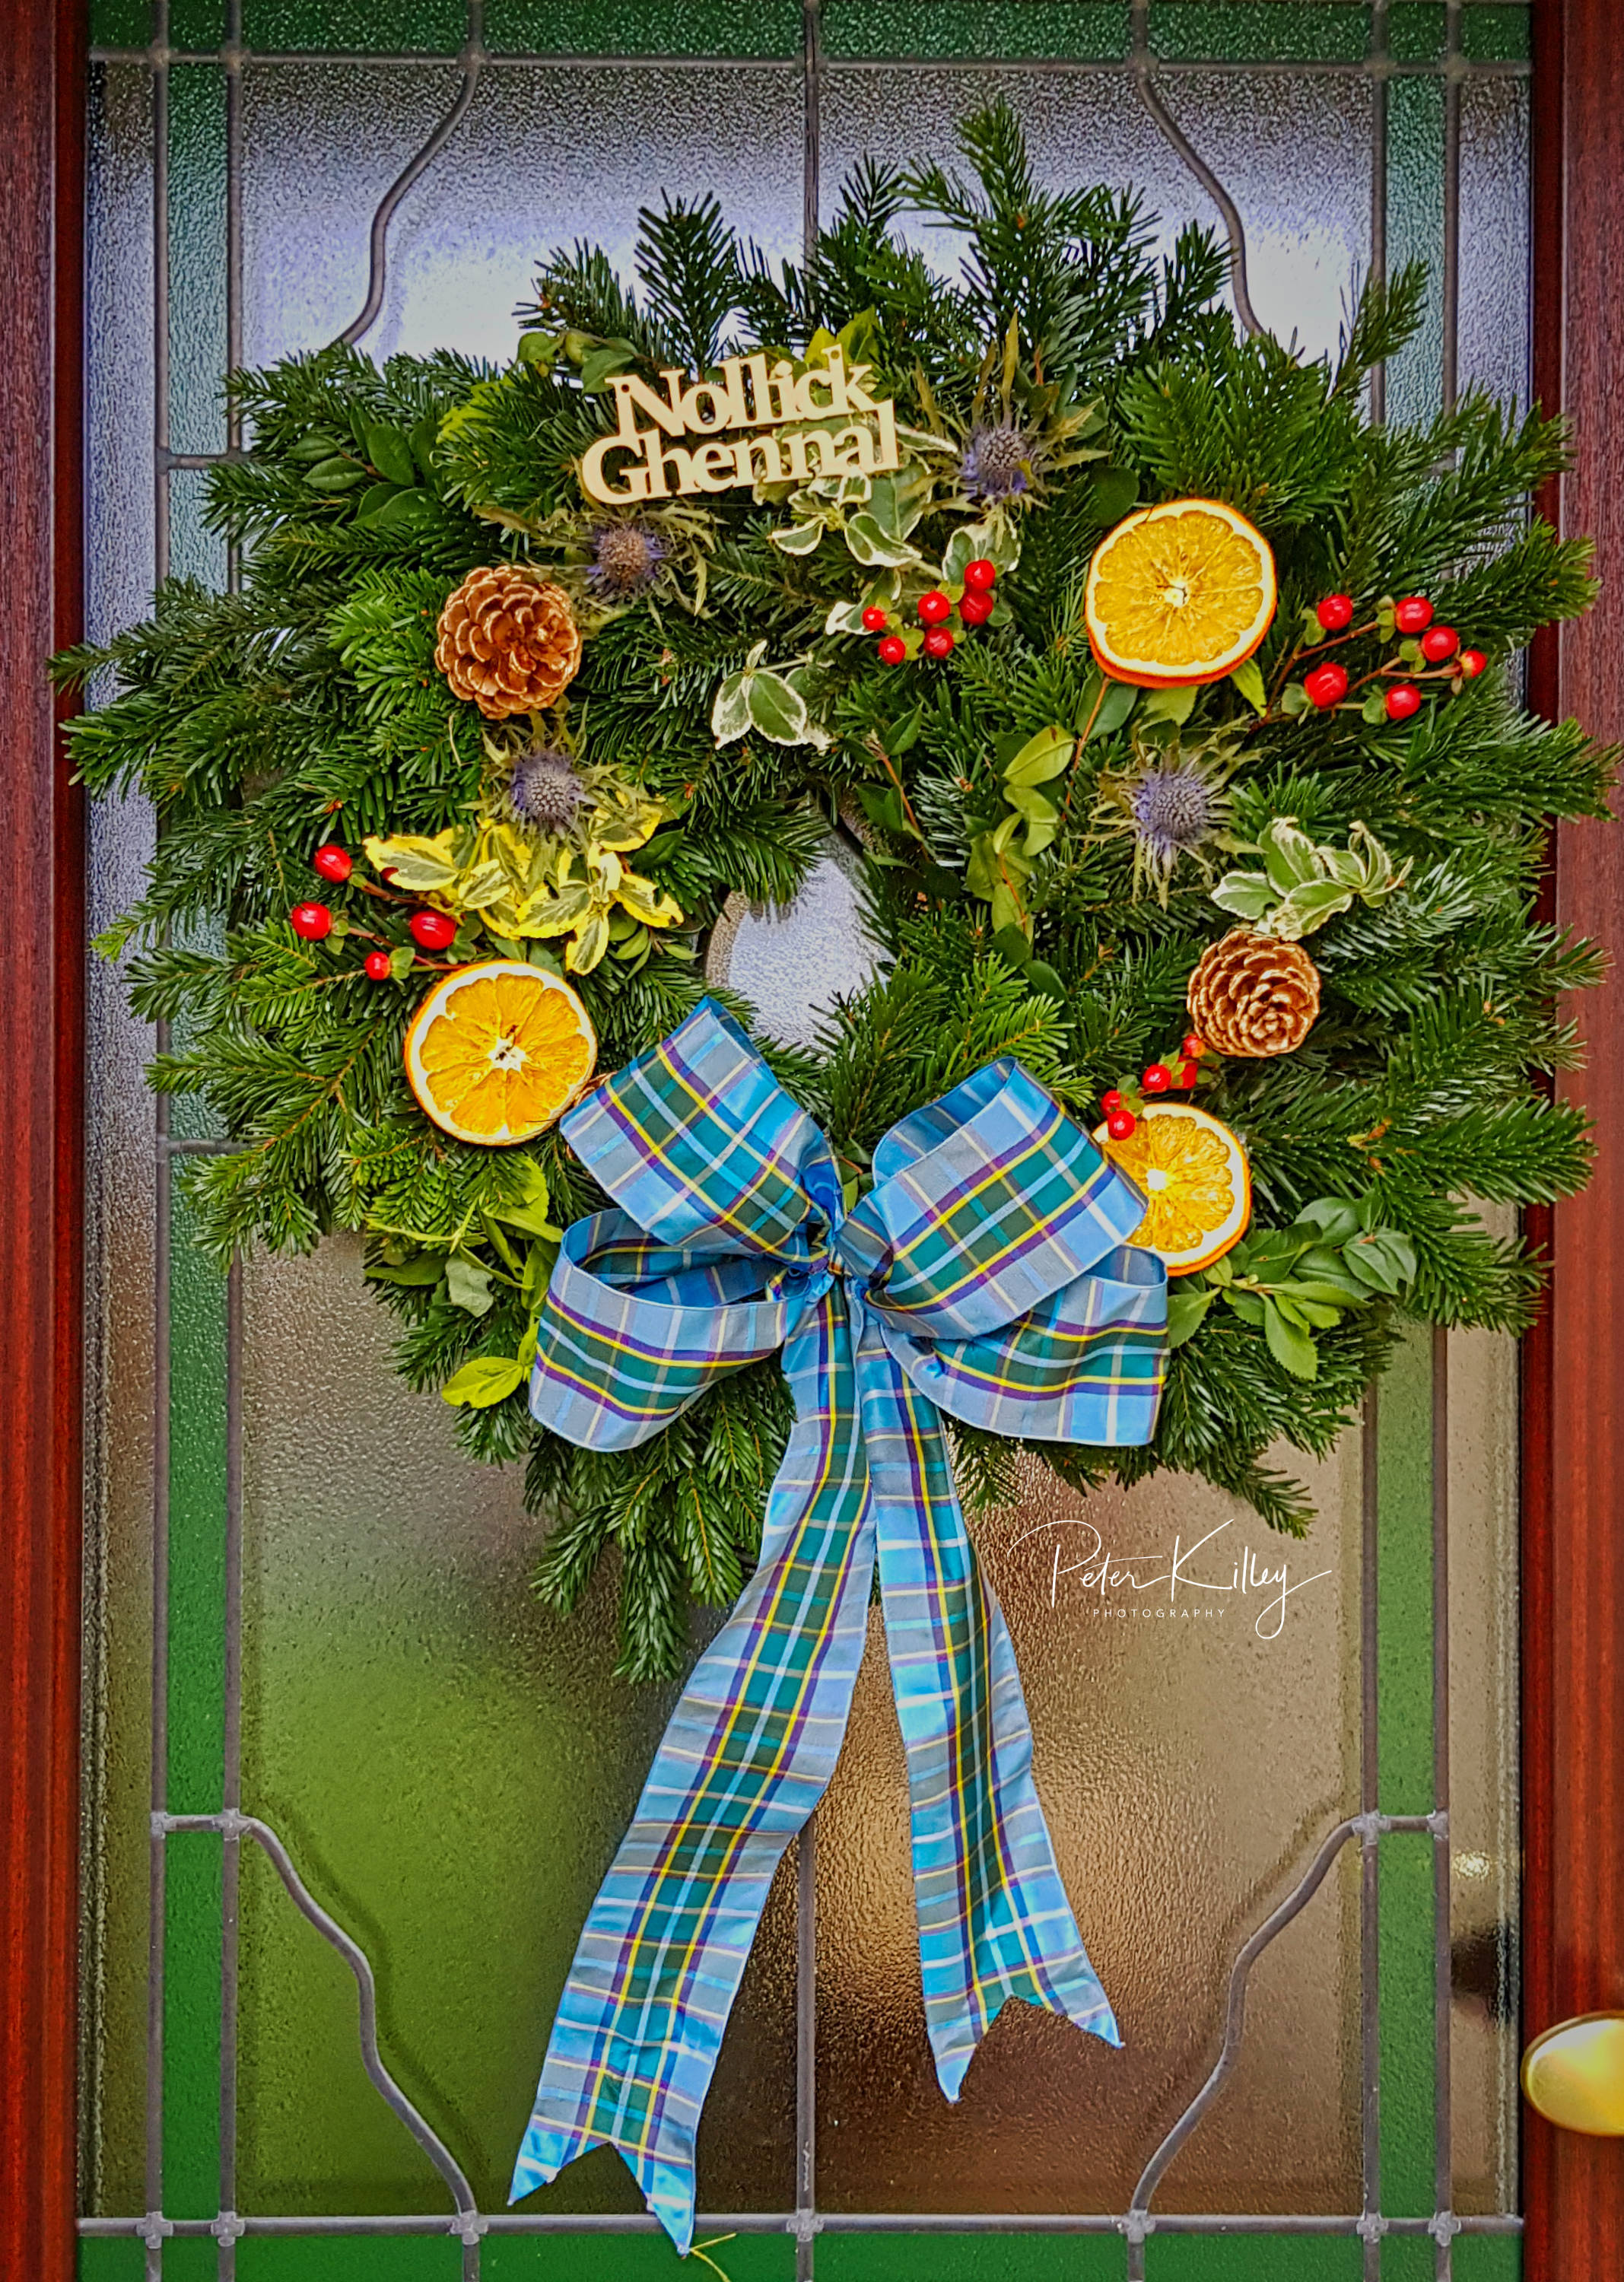 Manx Door Wreath - © Peter Killey - www.manxscenes.com